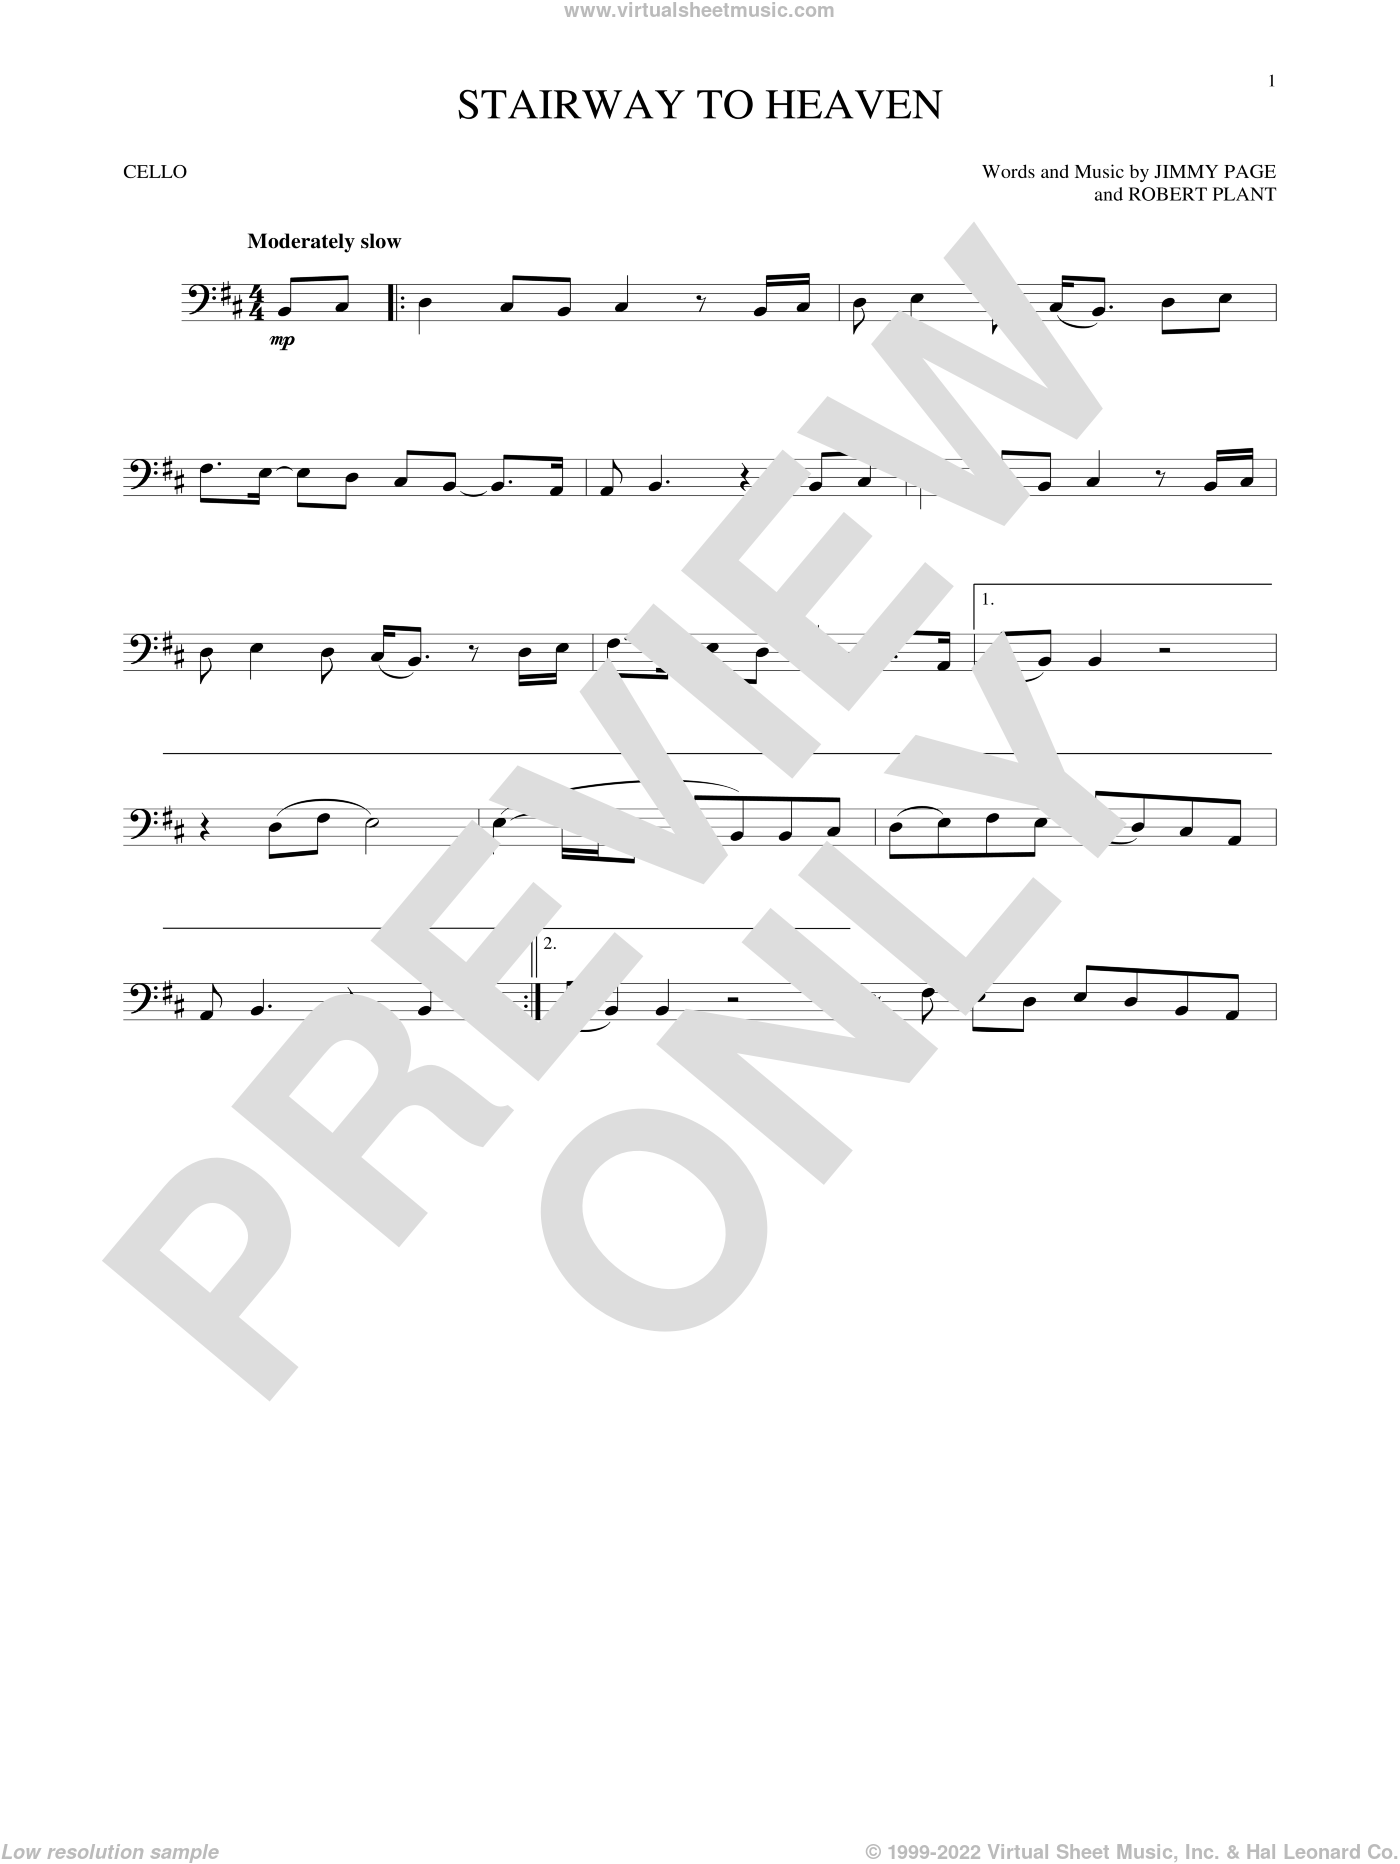 Stairway To Heaven sheet music for cello solo by Led Zeppelin, Jimmy Page and Robert Plant, intermediate skill level